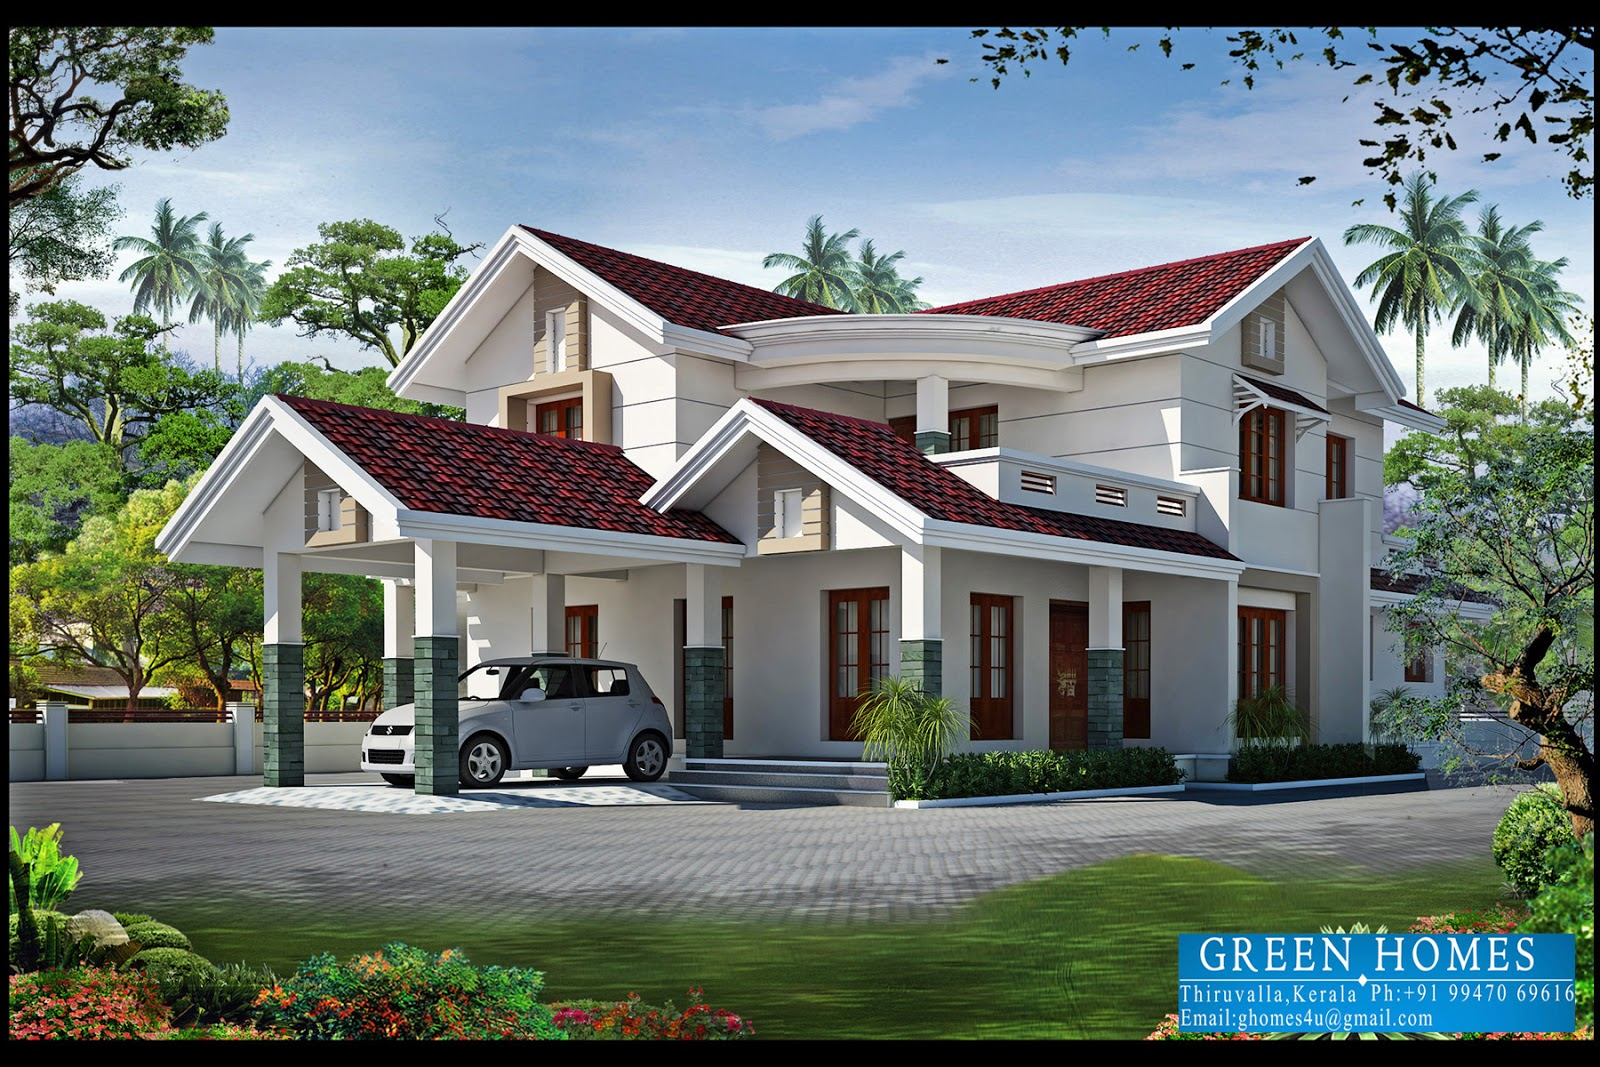 Green homes 4bhk kerala home design 2550 for New home models and plans